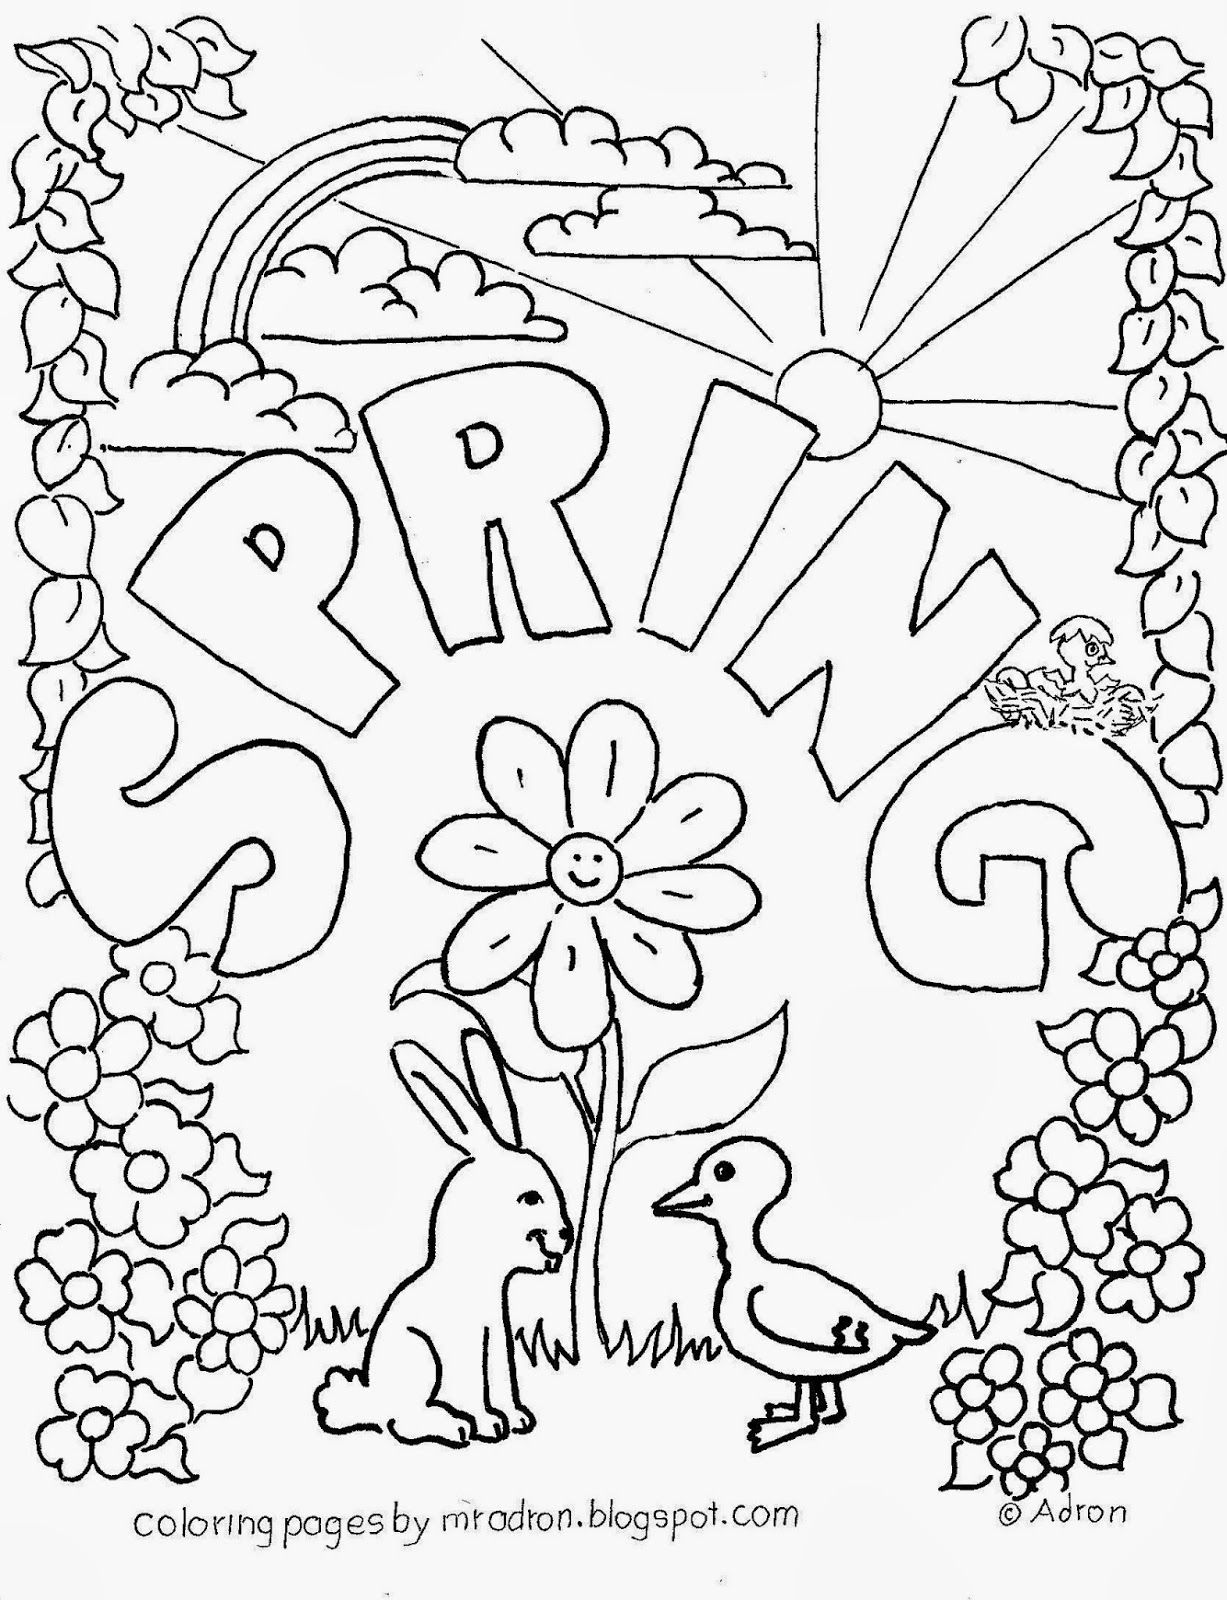 1000 images about coloring sheets on pinterest spring coloring